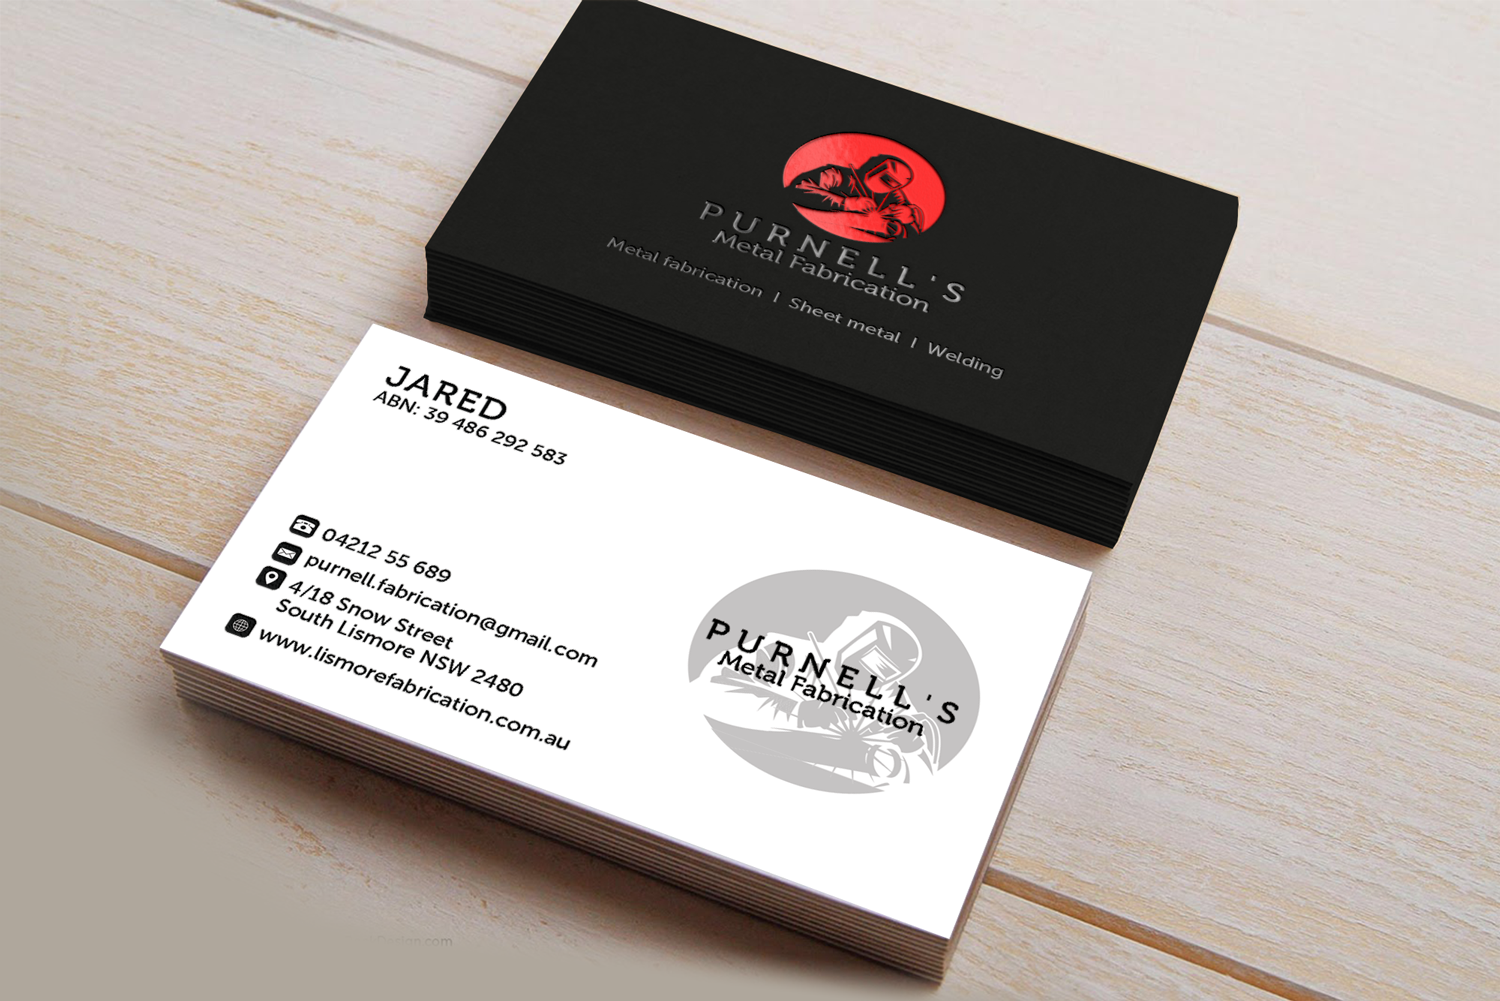 Magnificent metal business cards australia photos business card elegant playful business business card design for purnells metal reheart Gallery